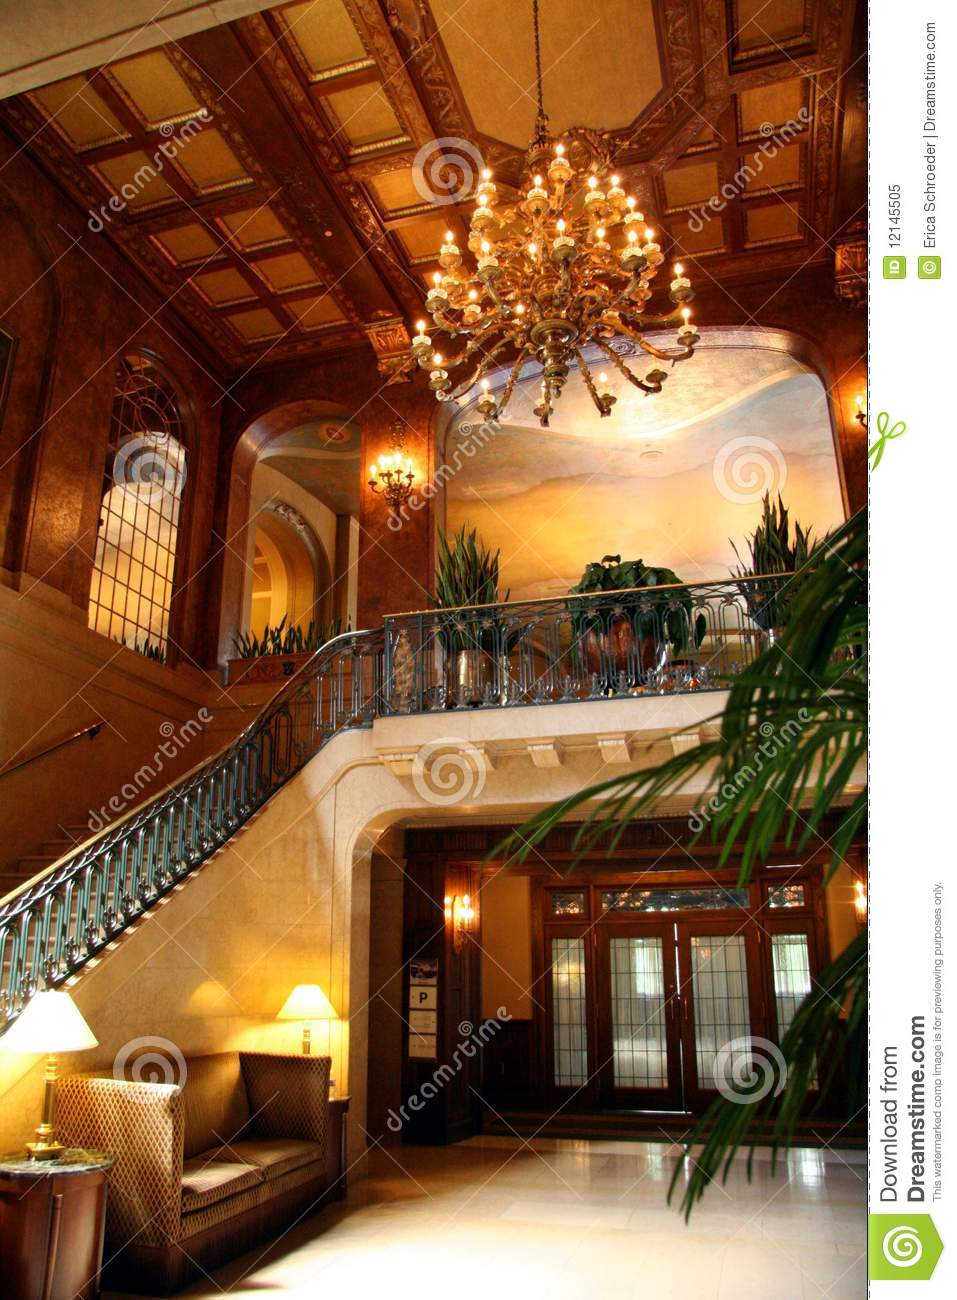 Hotel Lobby Interior Stock Image Image Of Fancy Place